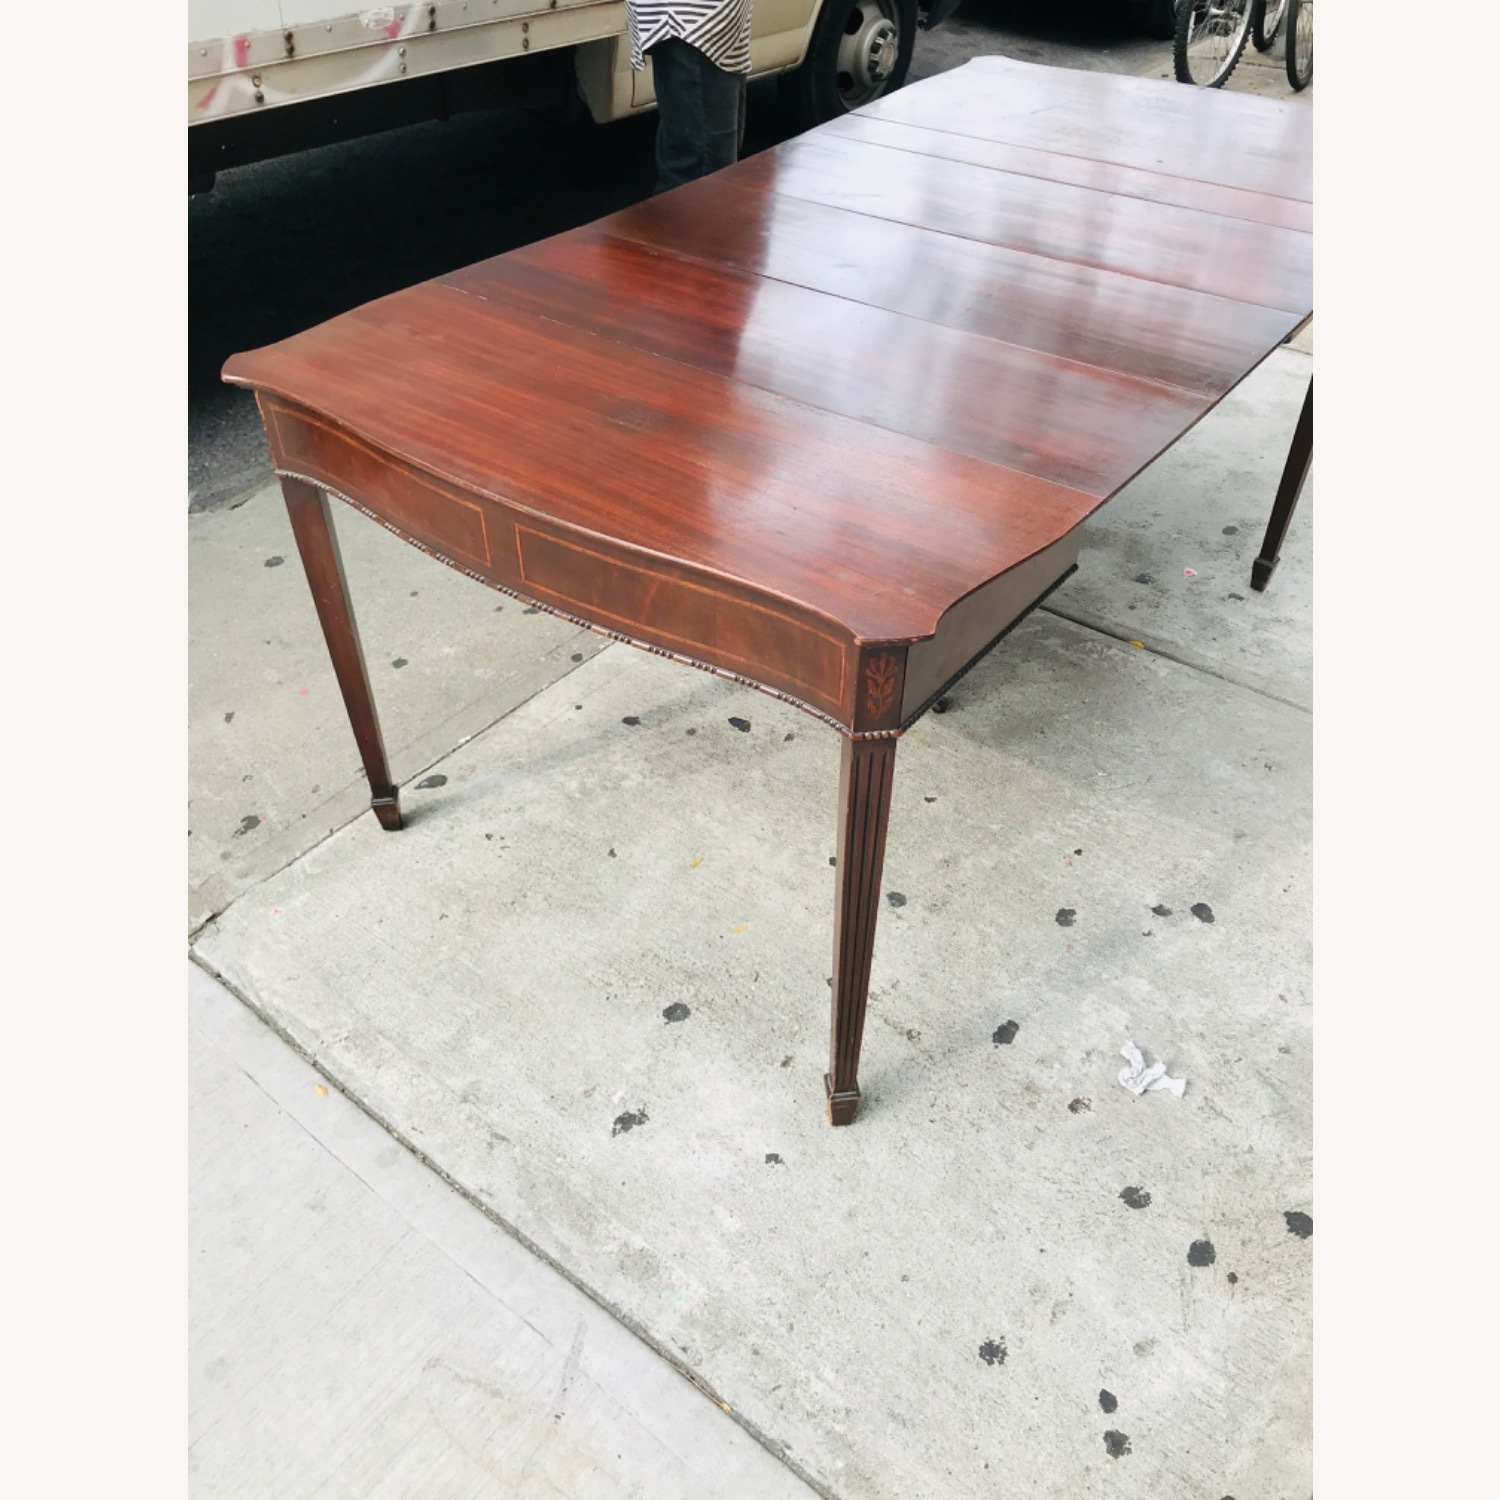 Antique 1920s Mahogany Table w/3 Leaves  - image-20